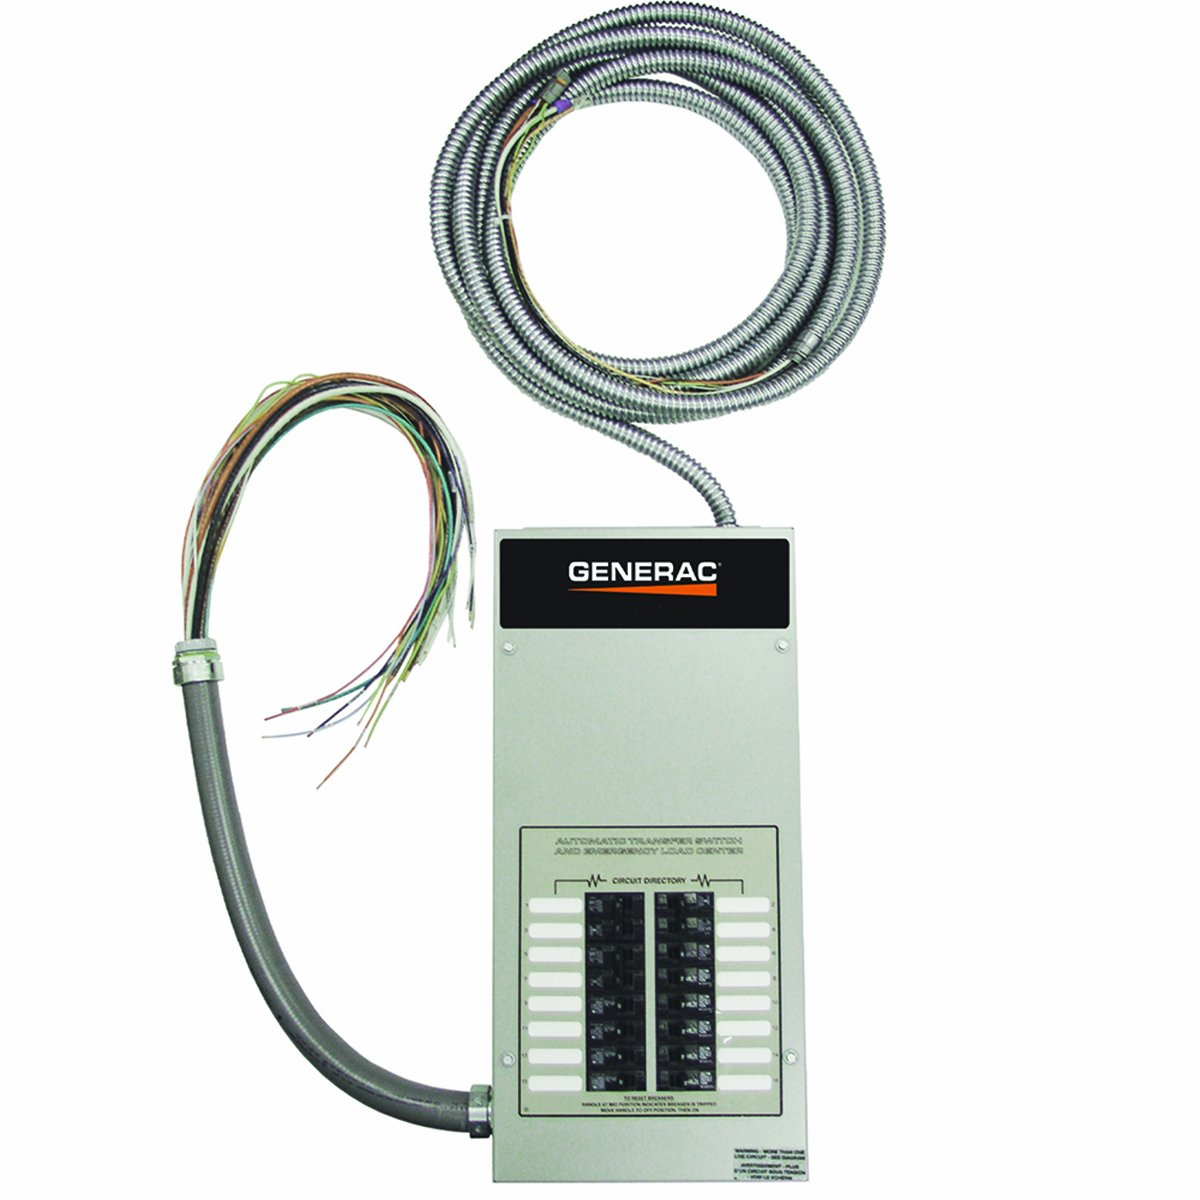 Generac RTG16EZA1 Automatic Transfer Switch 16-Circuit 100-Amp Load Center, Rated NEMA 1 CUL